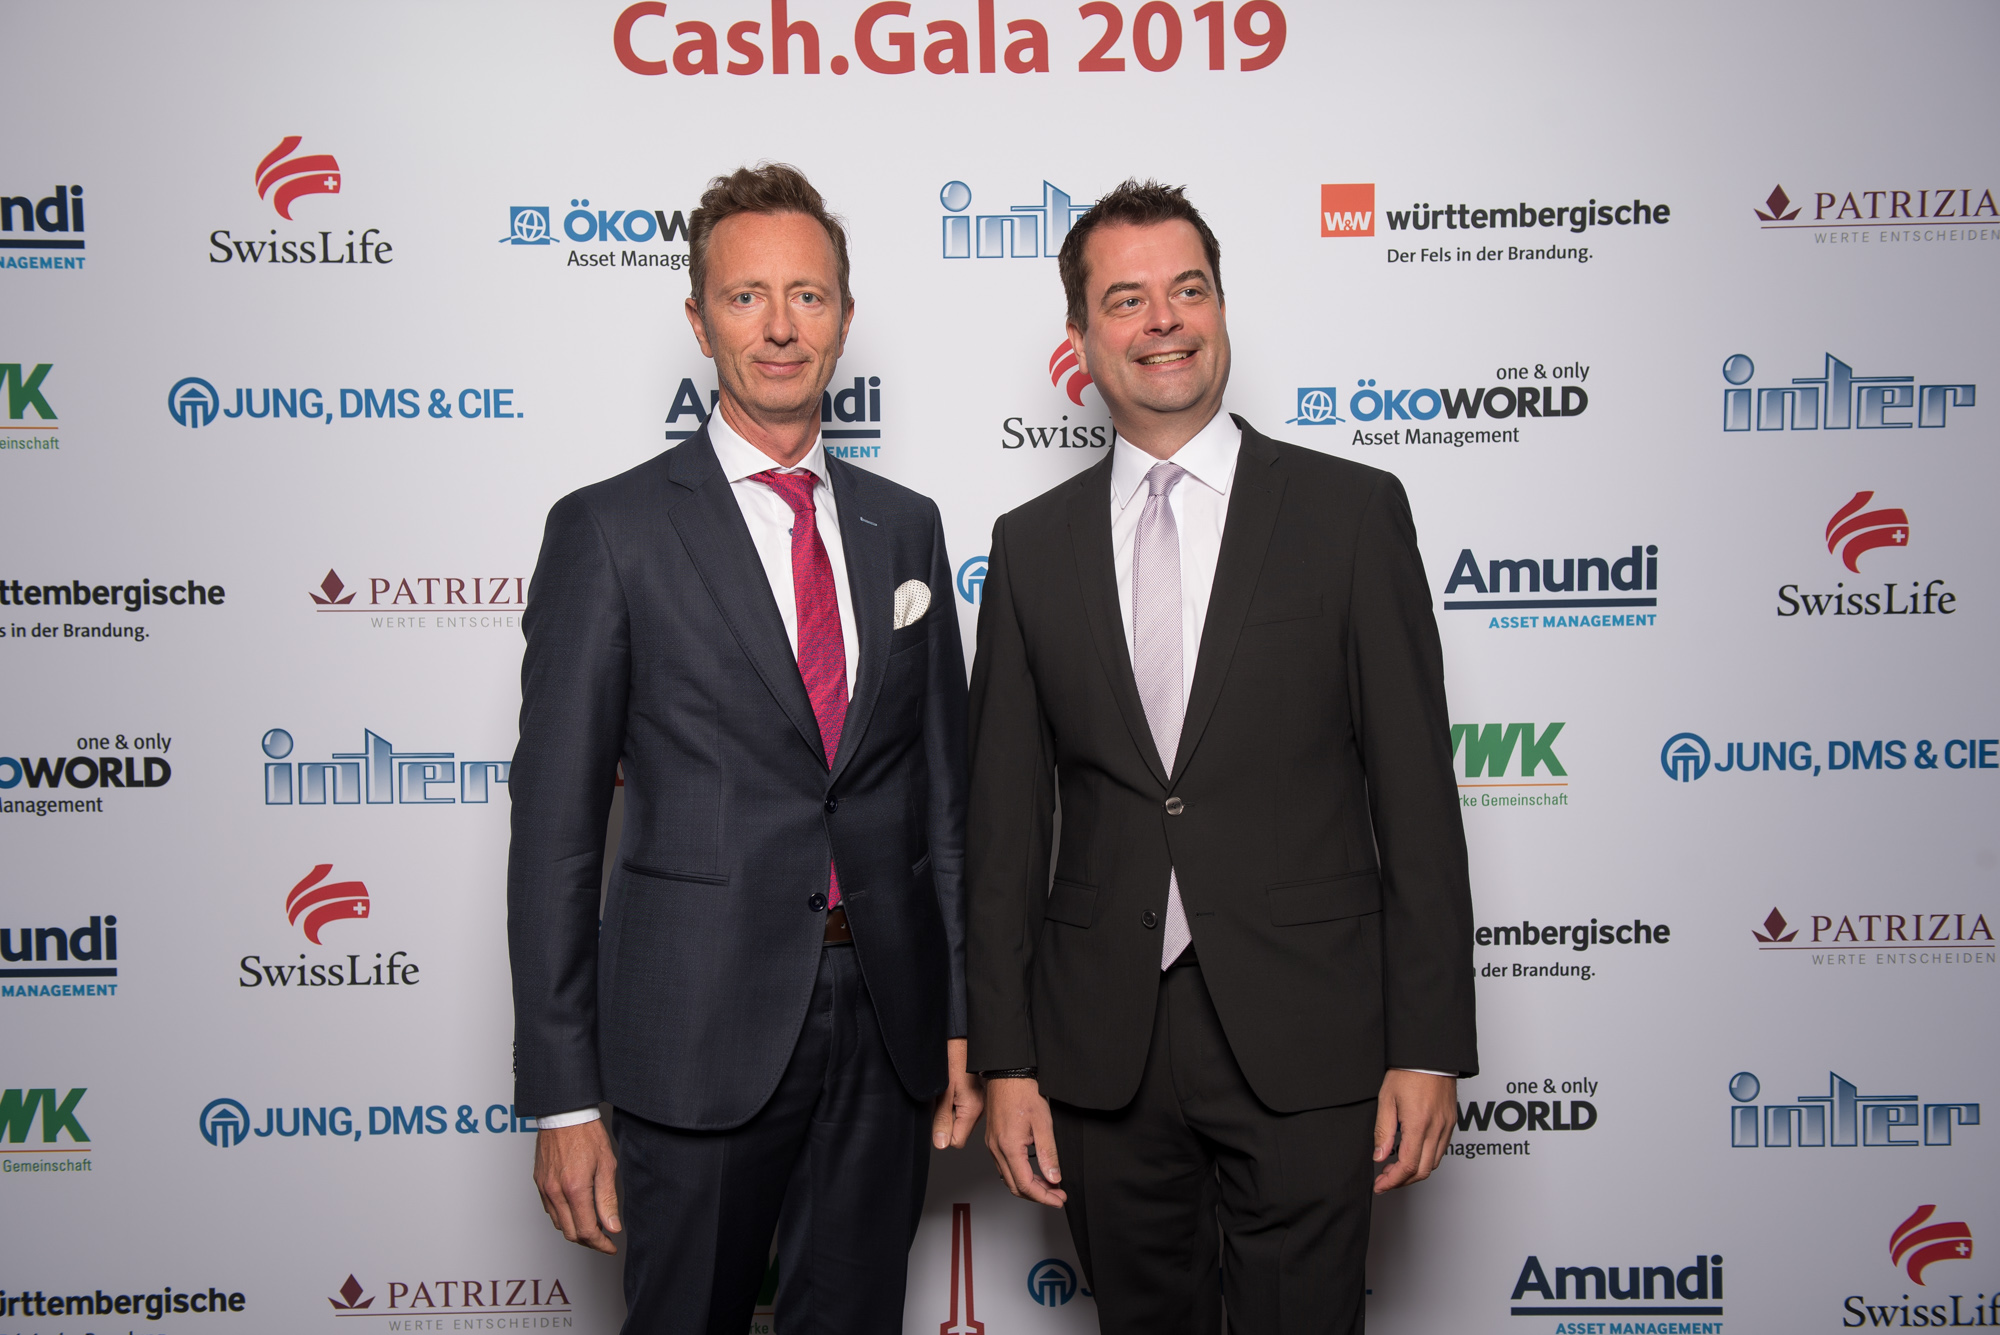 CashGala 2019 0068 AM DSC7145 in Cash.Gala 2019